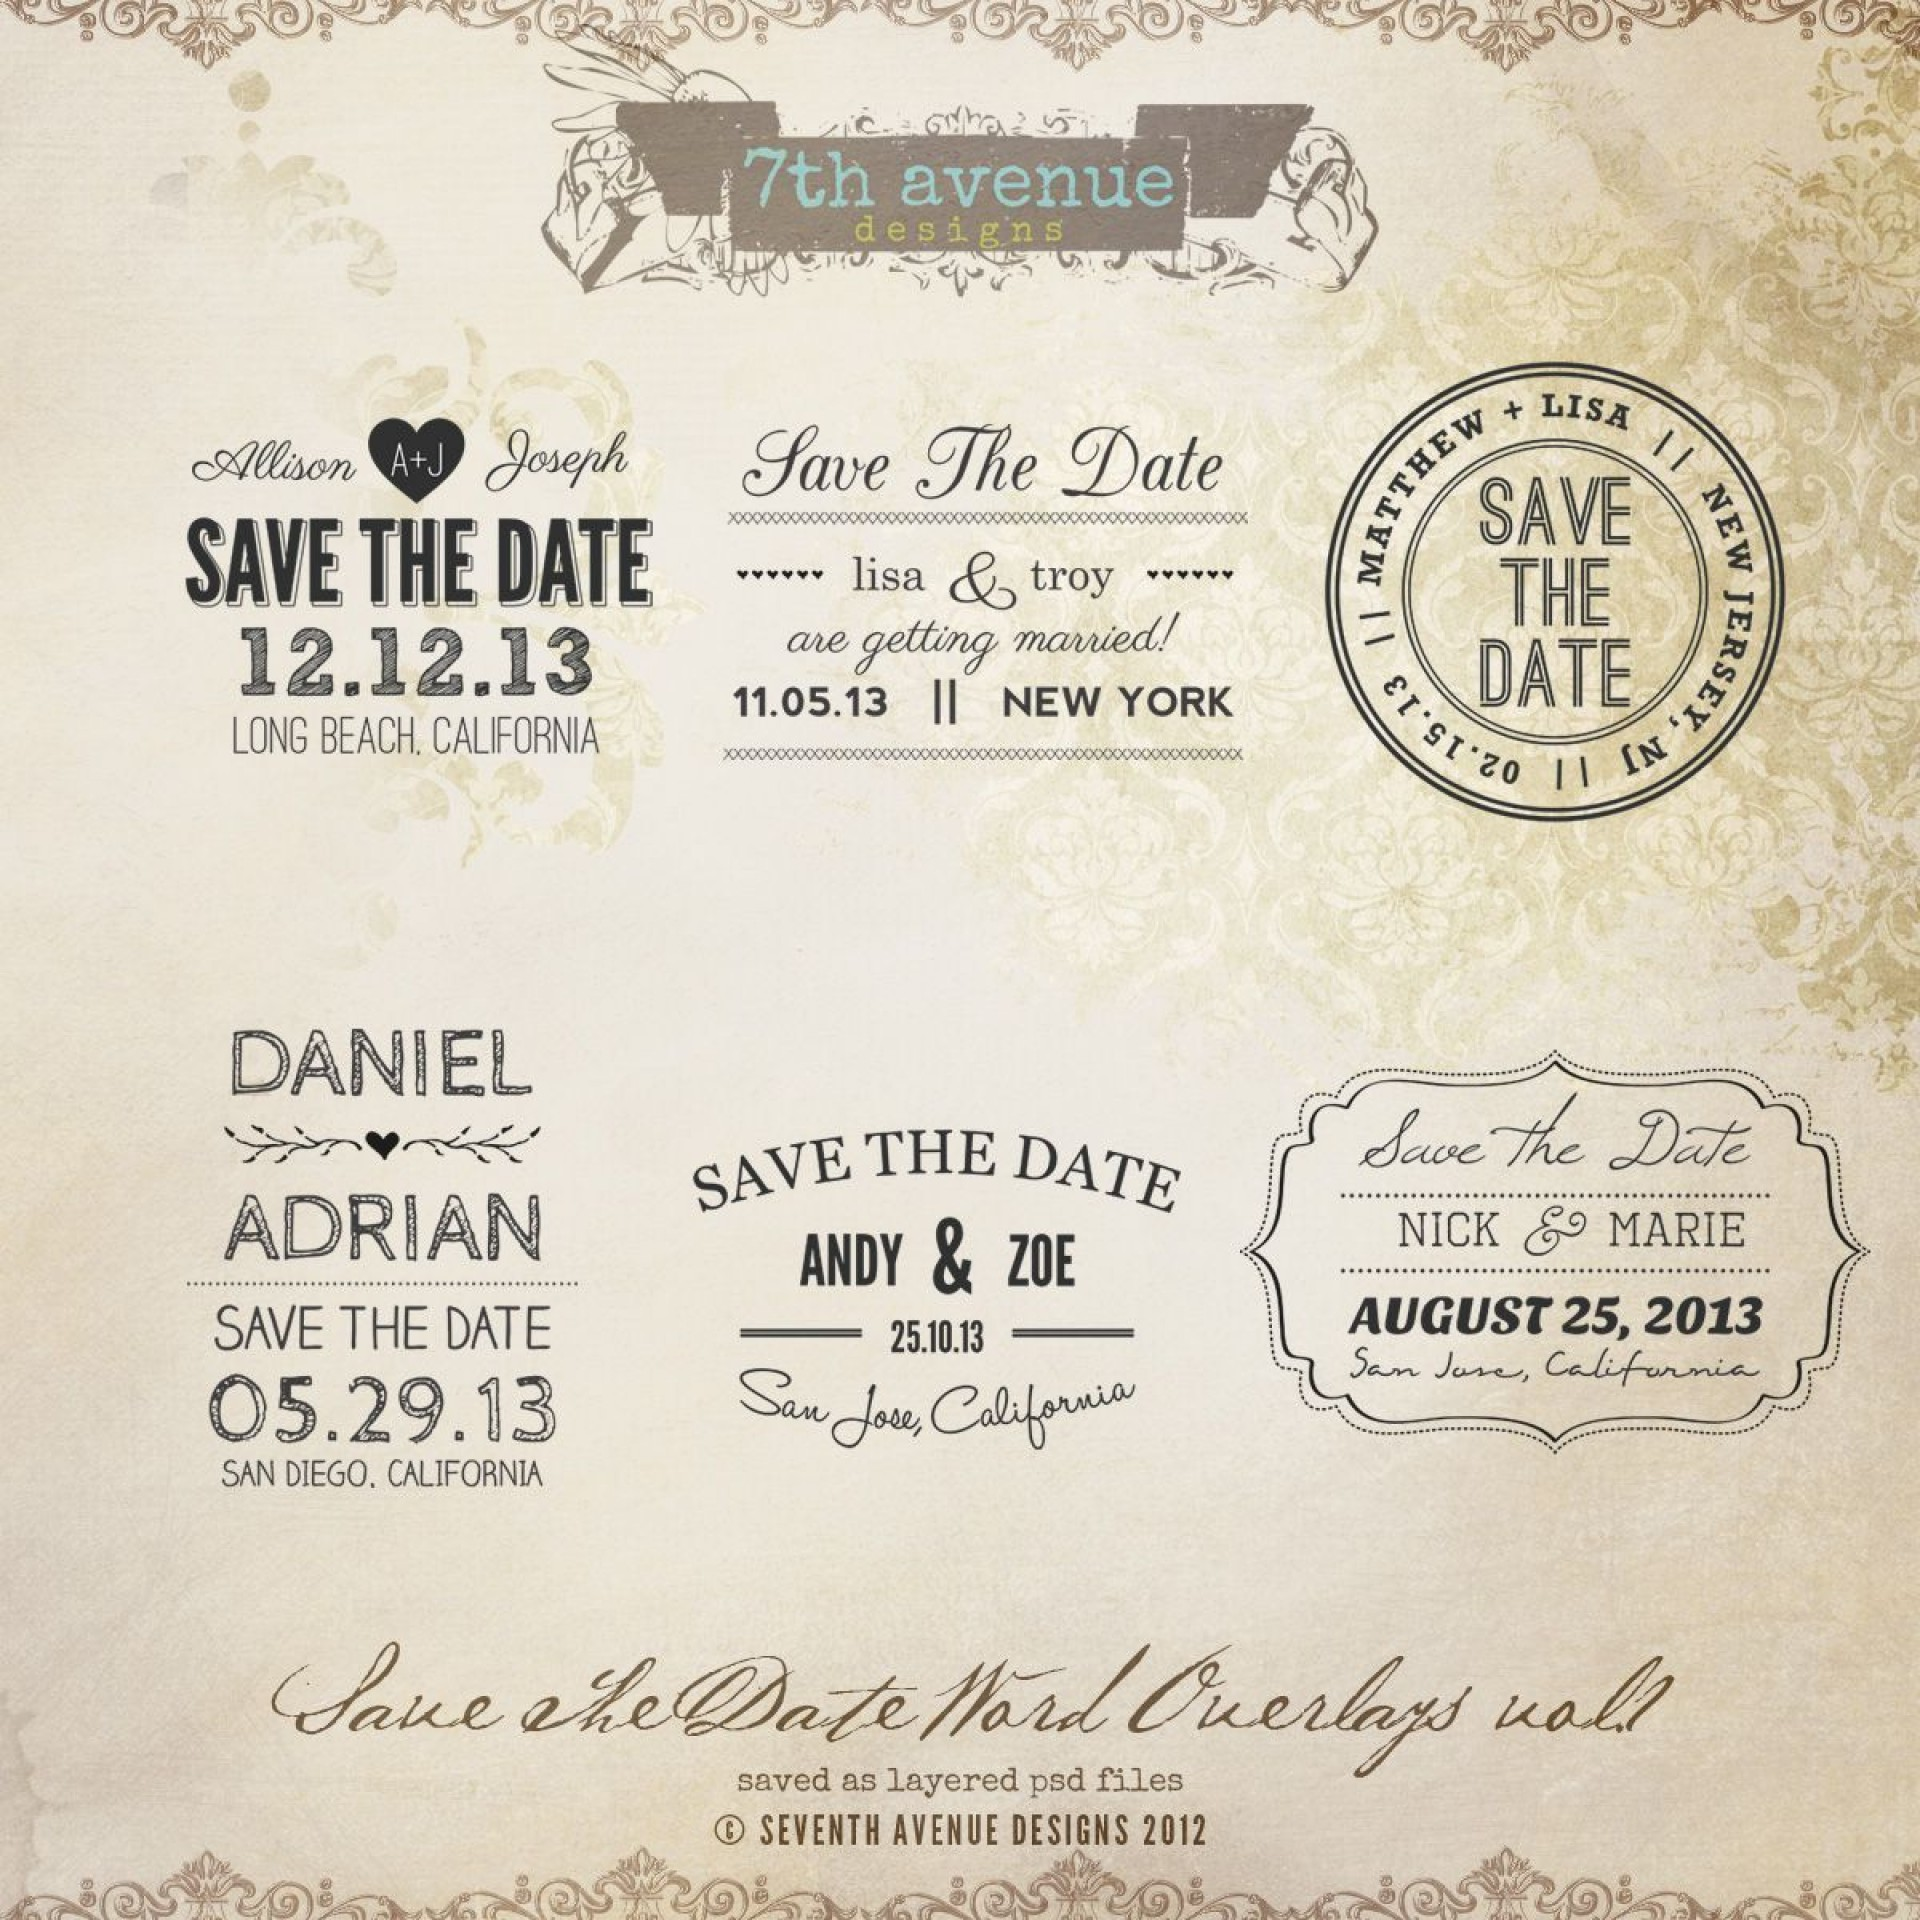 003 Imposing Save The Date Template Word Idea  Free Customizable For Holiday Party1920